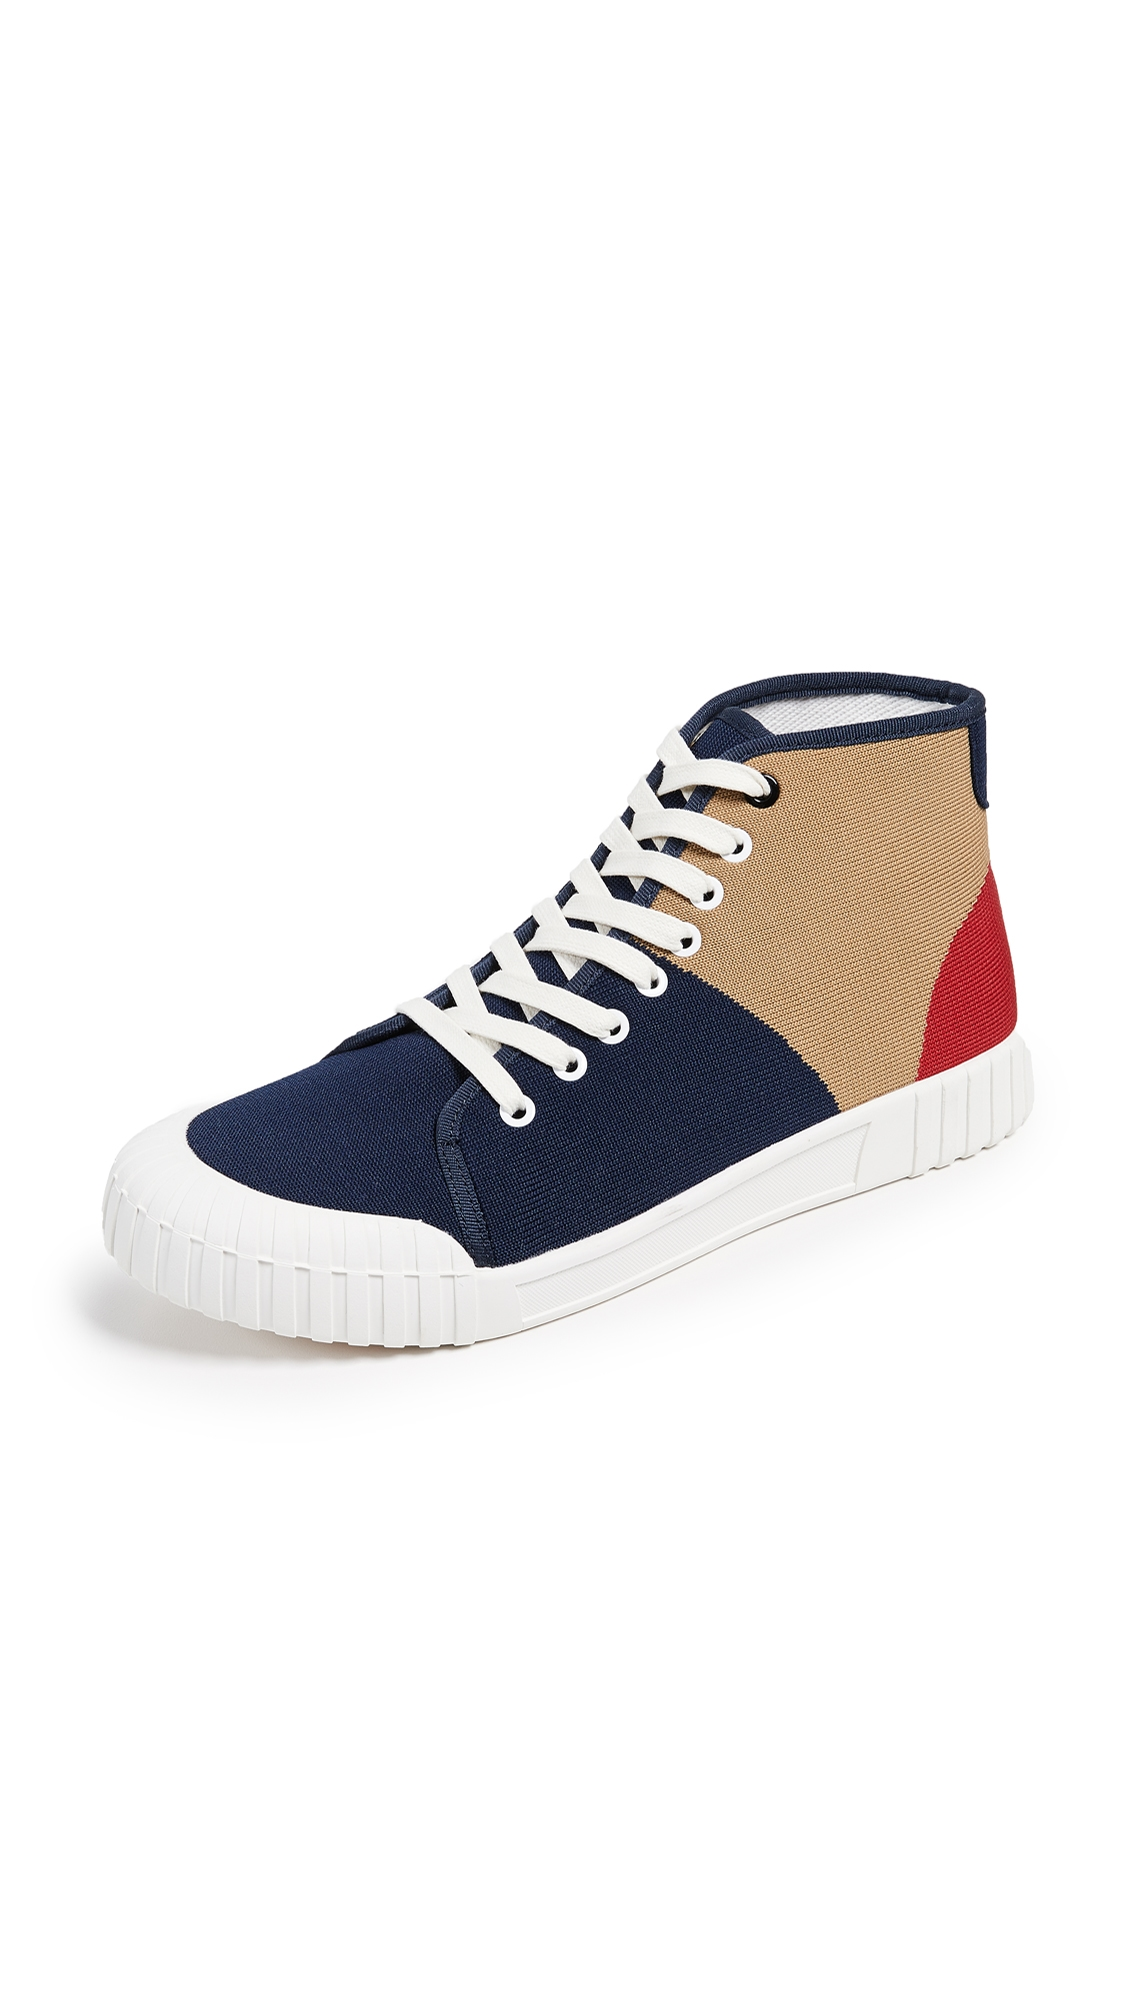 GOOD NEWS Gamer High Top Sneakers in Tri Color